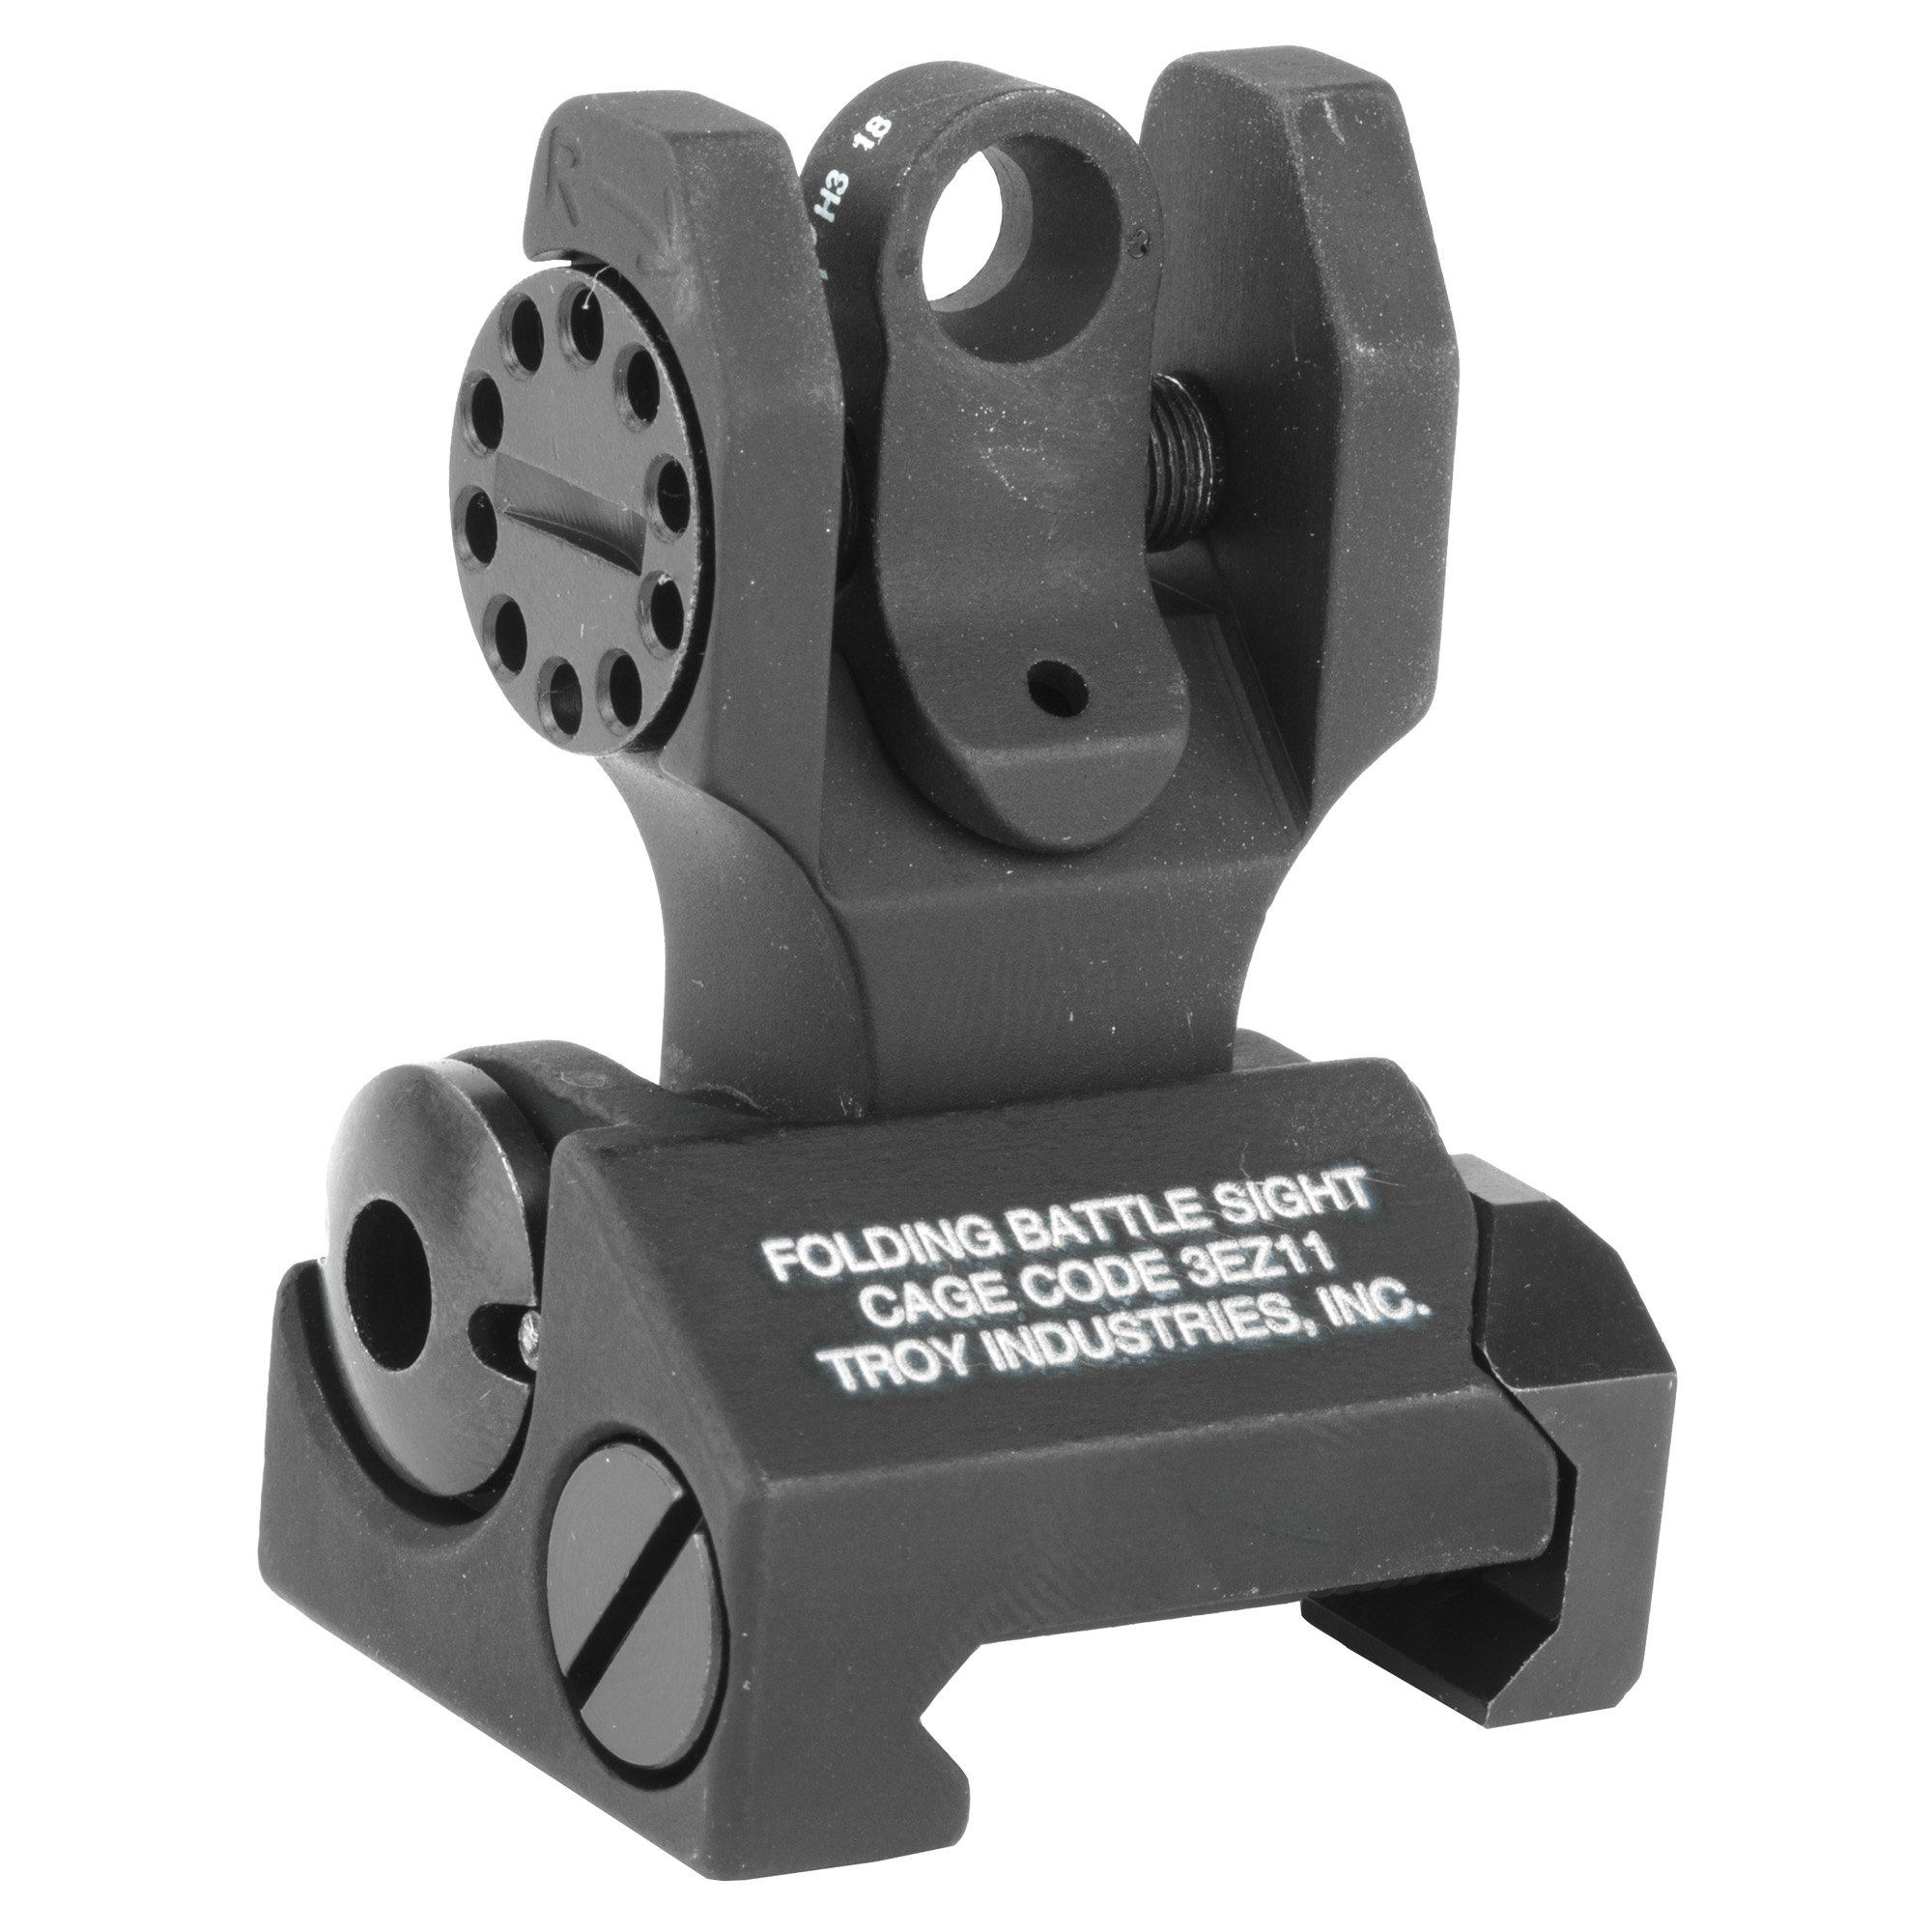 """Troy Industries' Tritium BattleSights(TM) are designed to eliminate the poor sight orientation that is typical in twilight. Tritium is a form of hydrogen that emits a continuous light source when batteries or electricity are not available. The front post is centered between two Tritium points of reference to allow proper alignment. Troy Rear Folding Tritium Sights"""" a permanent"""" rail-mounted alternative to a standard A2 sight"""" allow limitless mounting options on all-length rails with a serrated ramp to eliminate glare."""